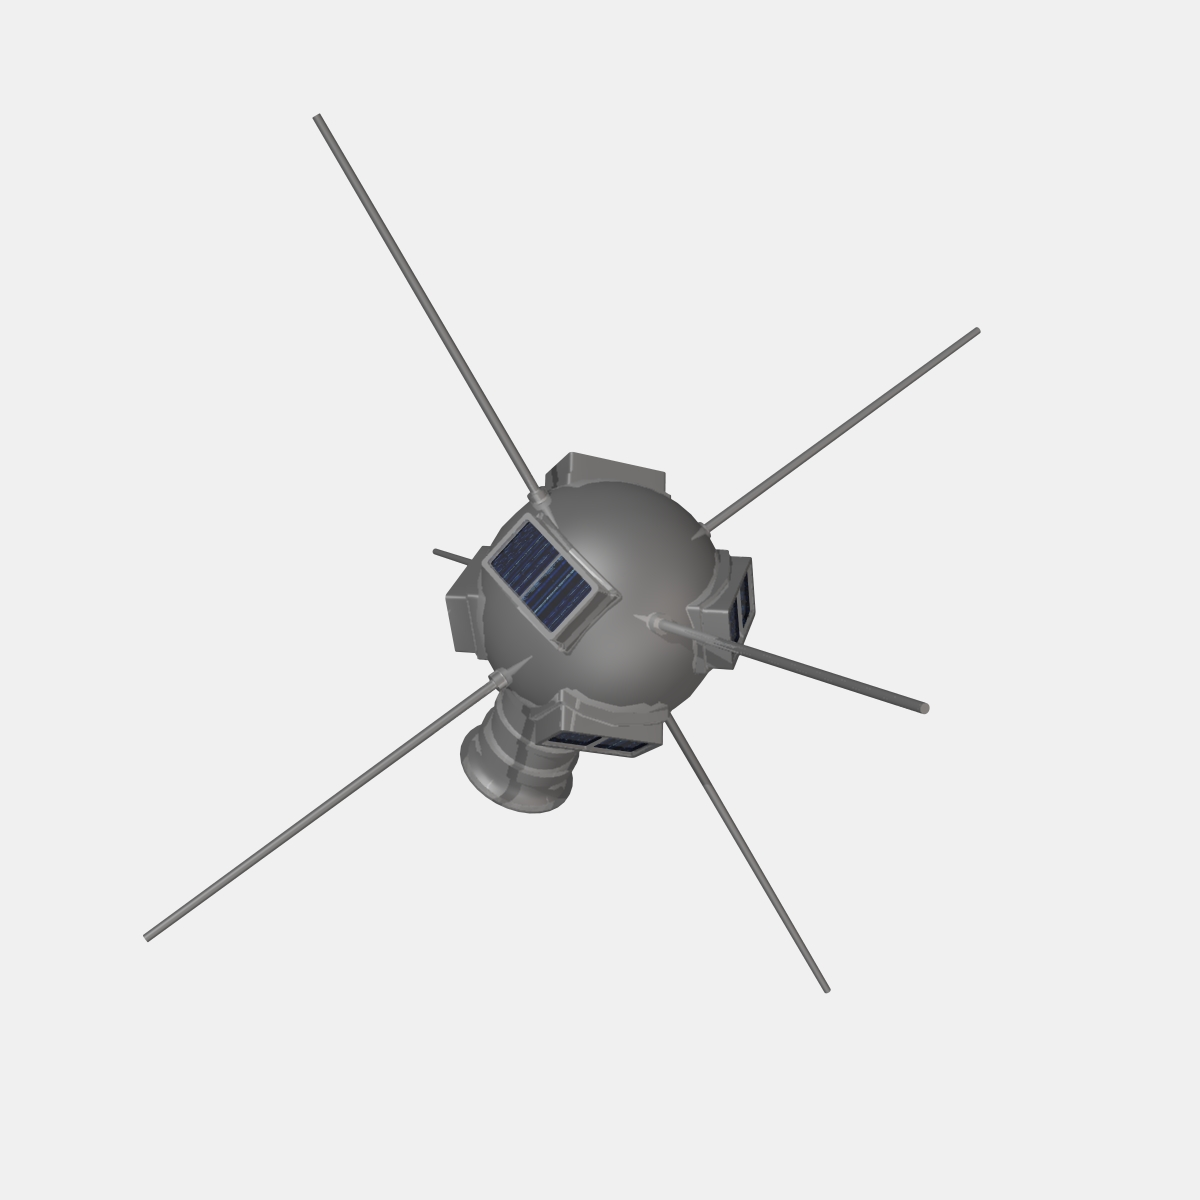 Vanguard I Satellite 3d model 3ds dxf fbx blend cob dae X obj 163928